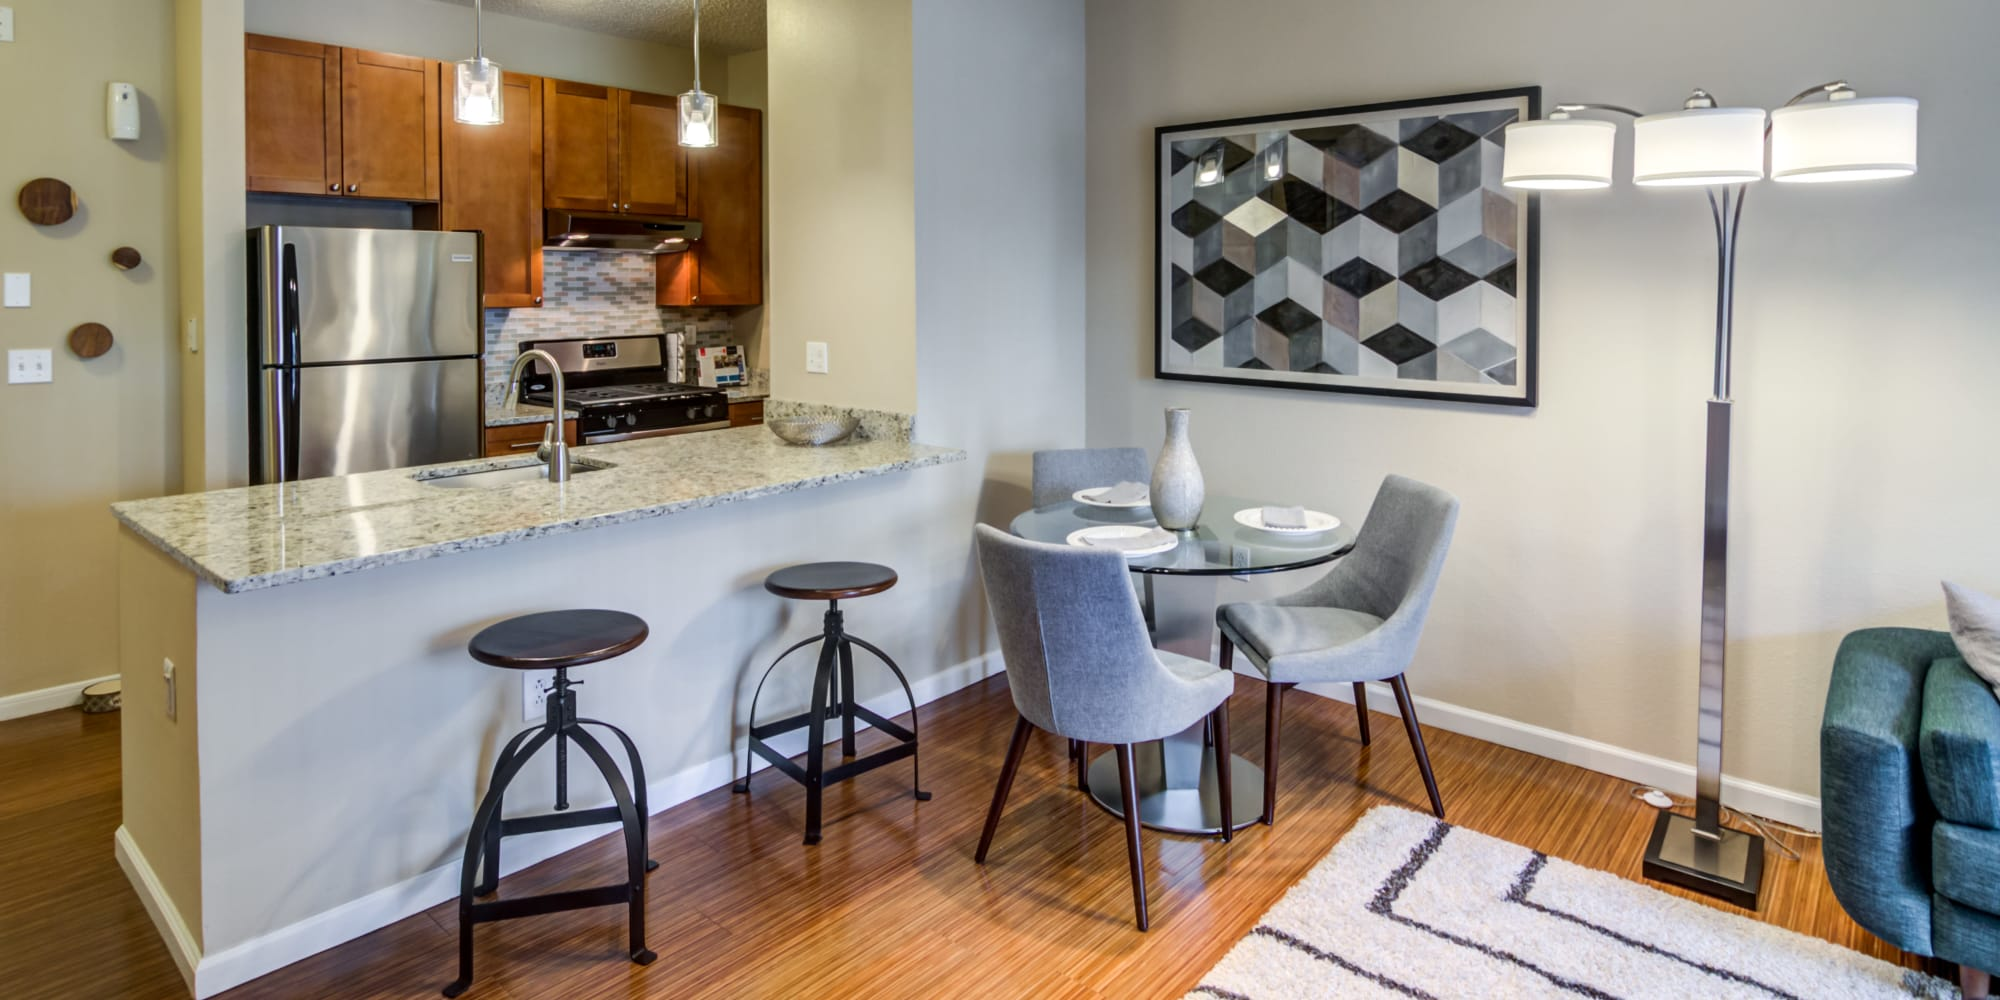 Apartments in Stamford, Connecticut at Sofi Parc Grove